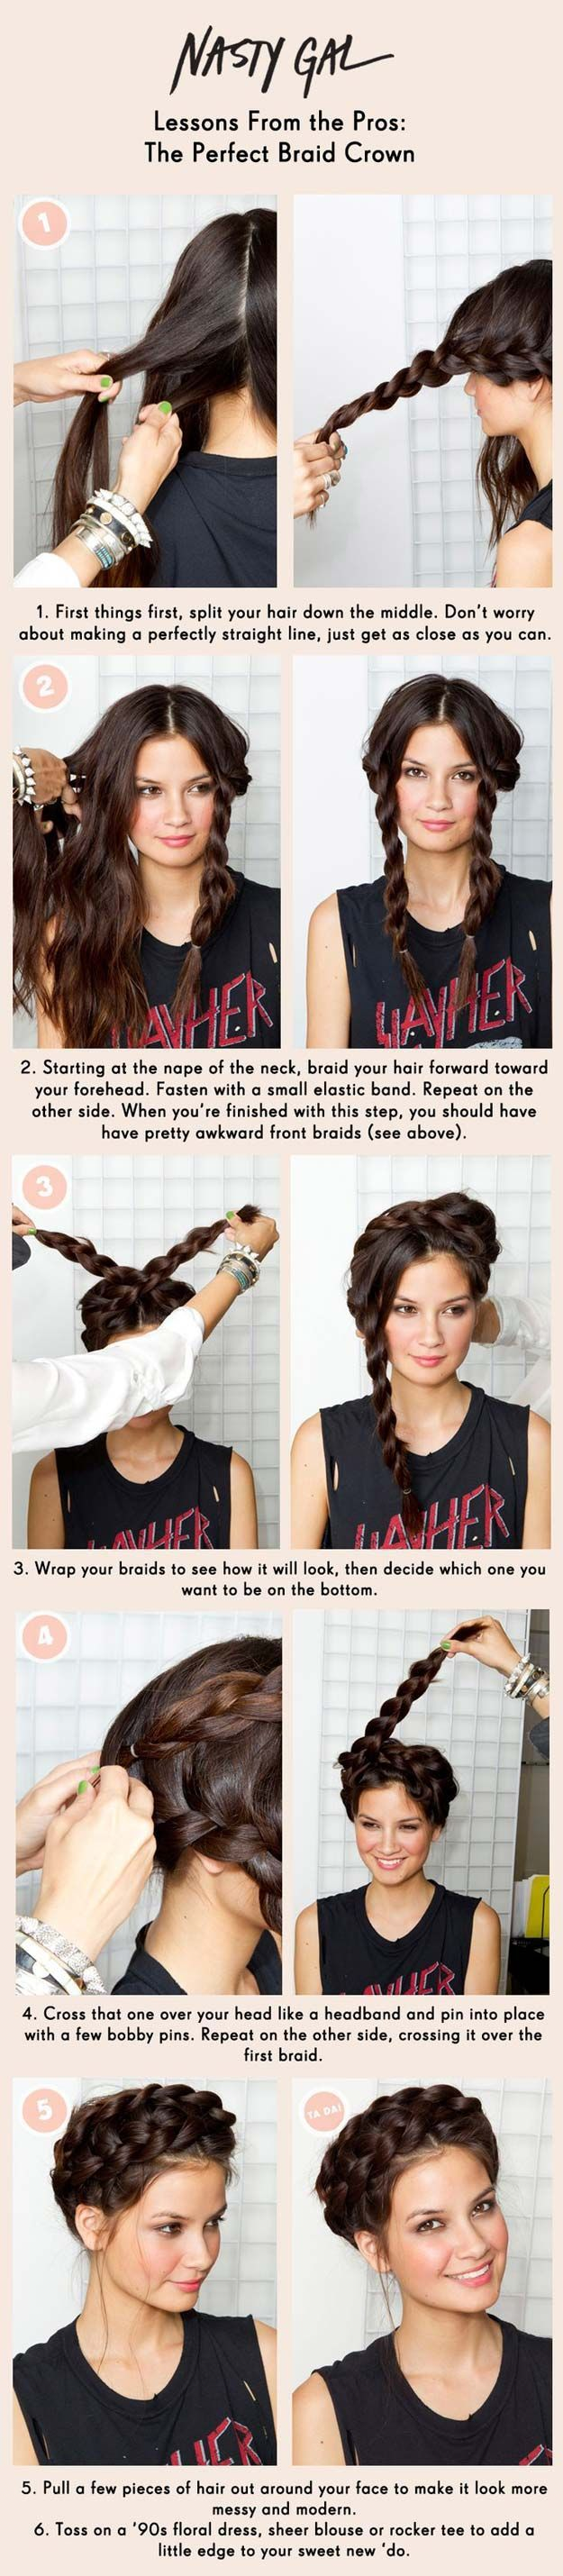 What Hairstyle Should I Get 113 Best Hairstyles For Teens Images On Pinterest  Hair Dos